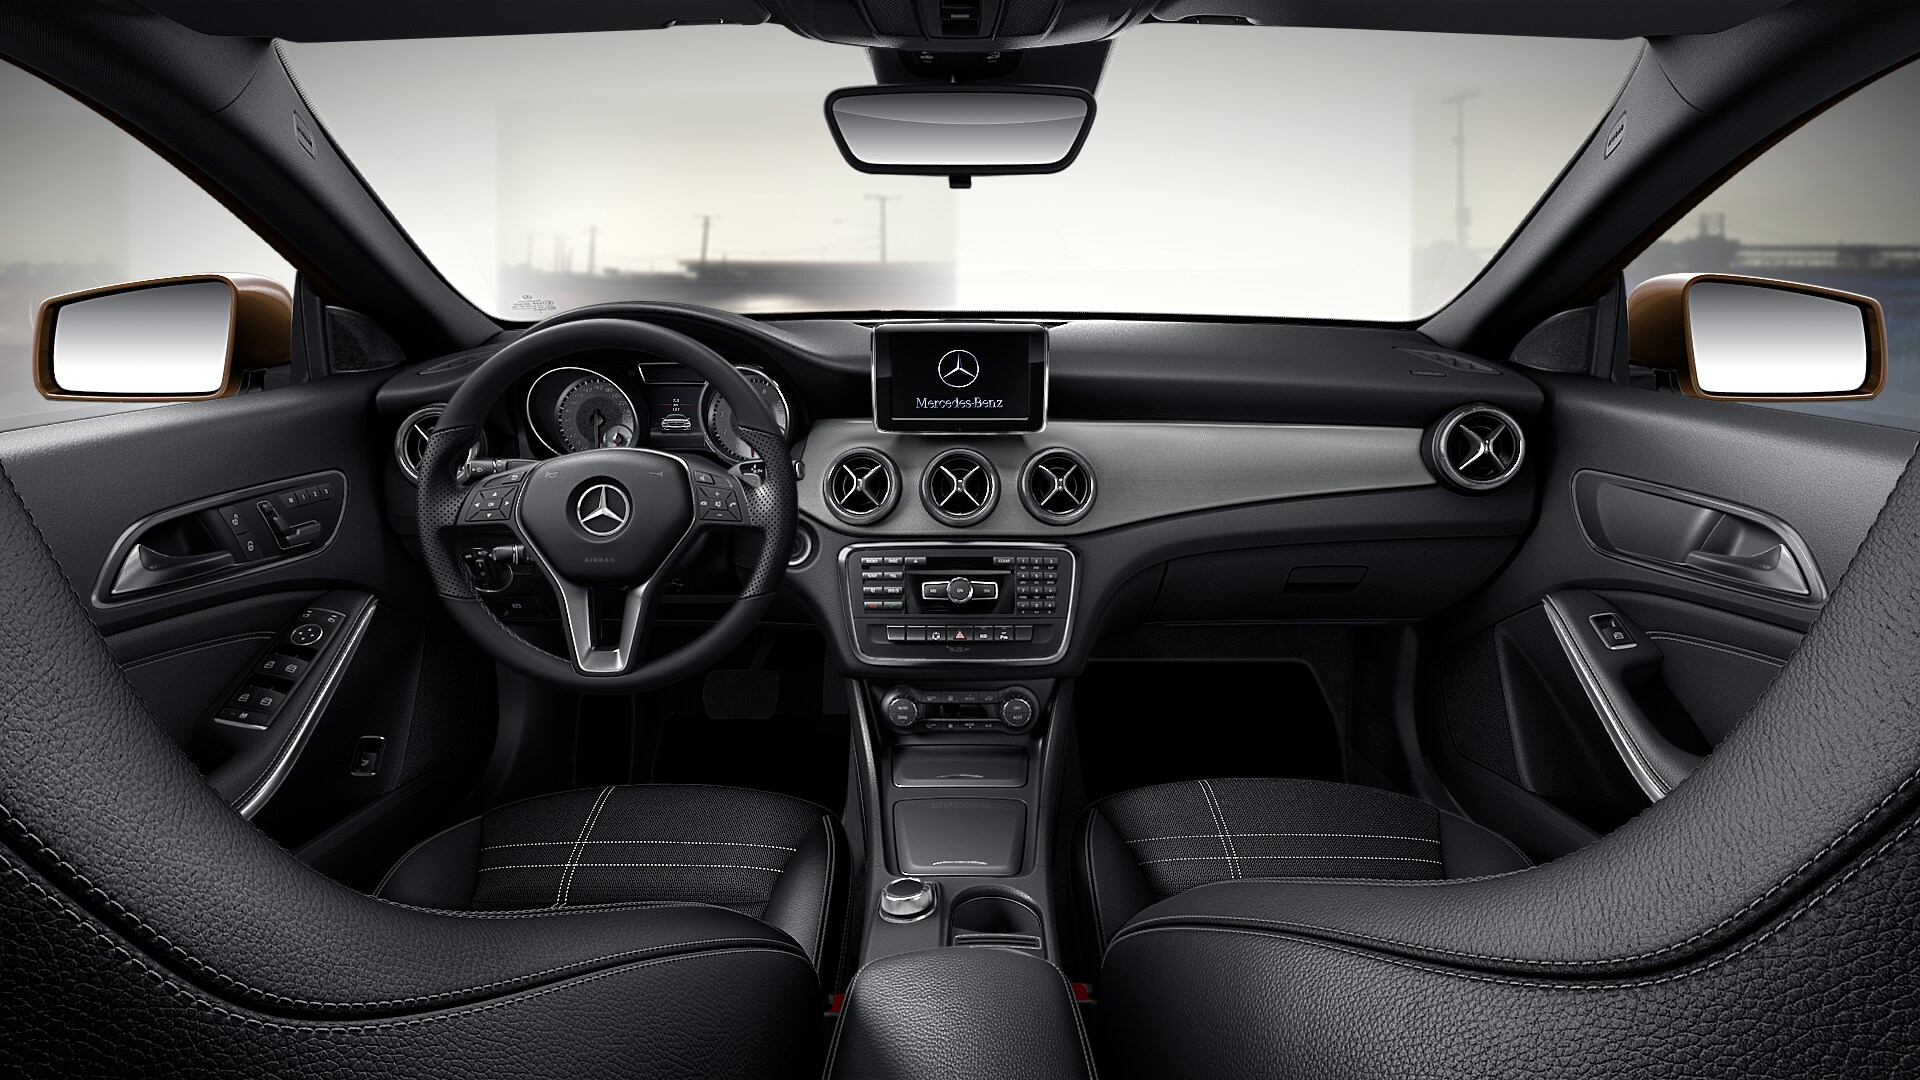 Benz cla 200 urban 2019 celebrity